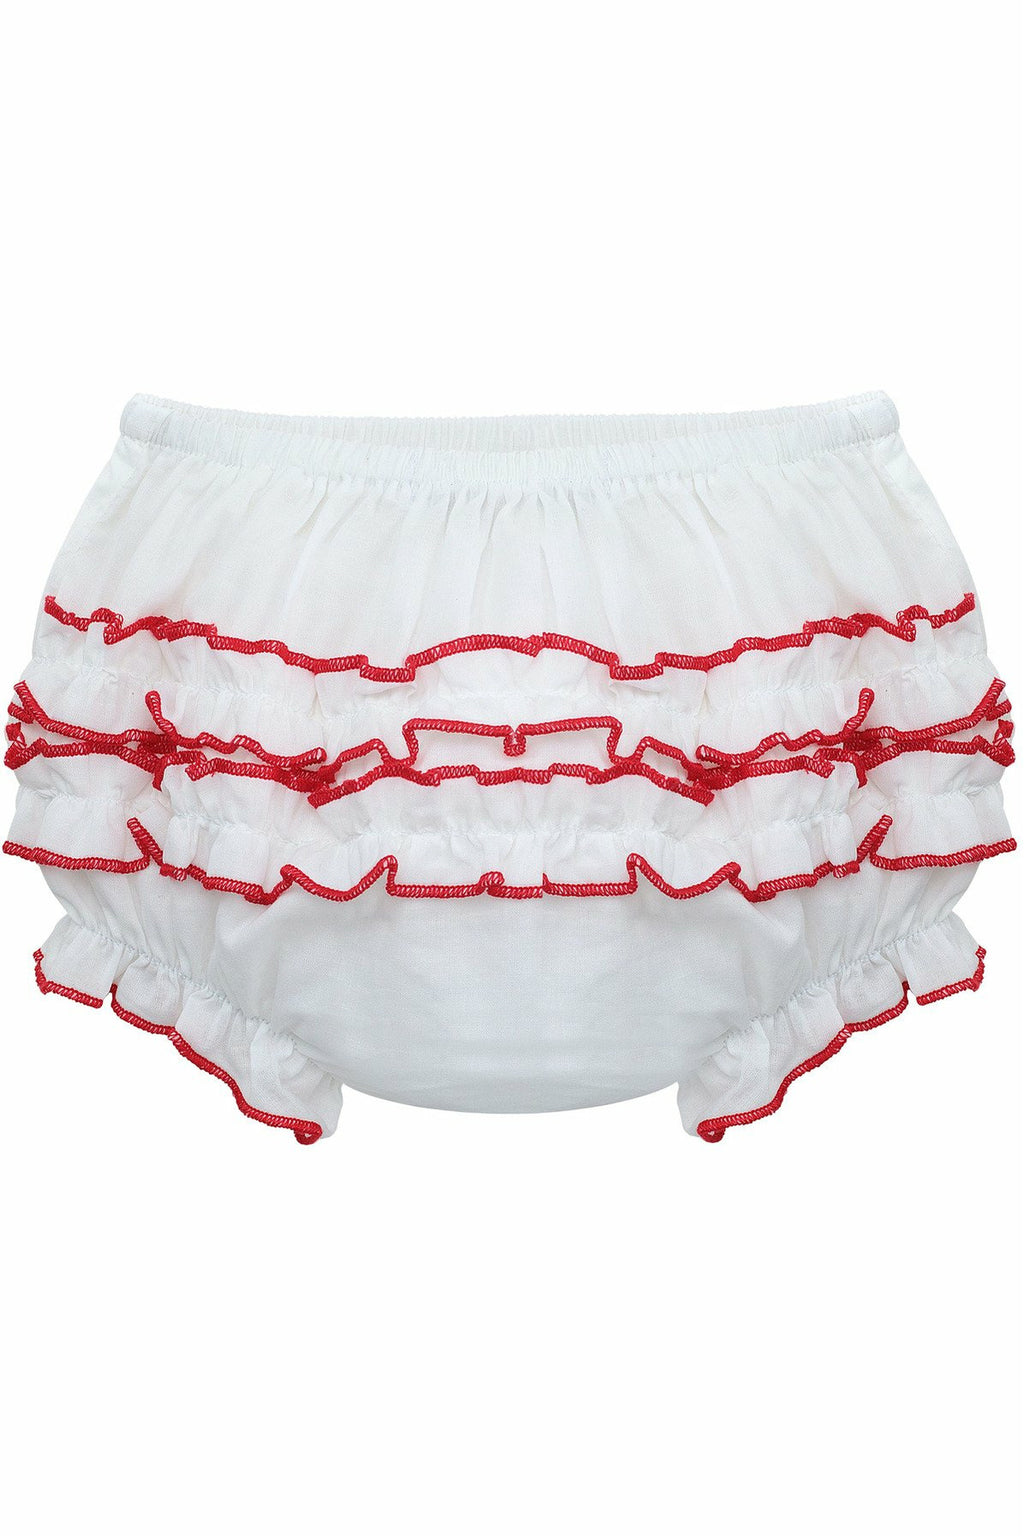 Baby Girls Ruffle Diaper Covers RedTrim